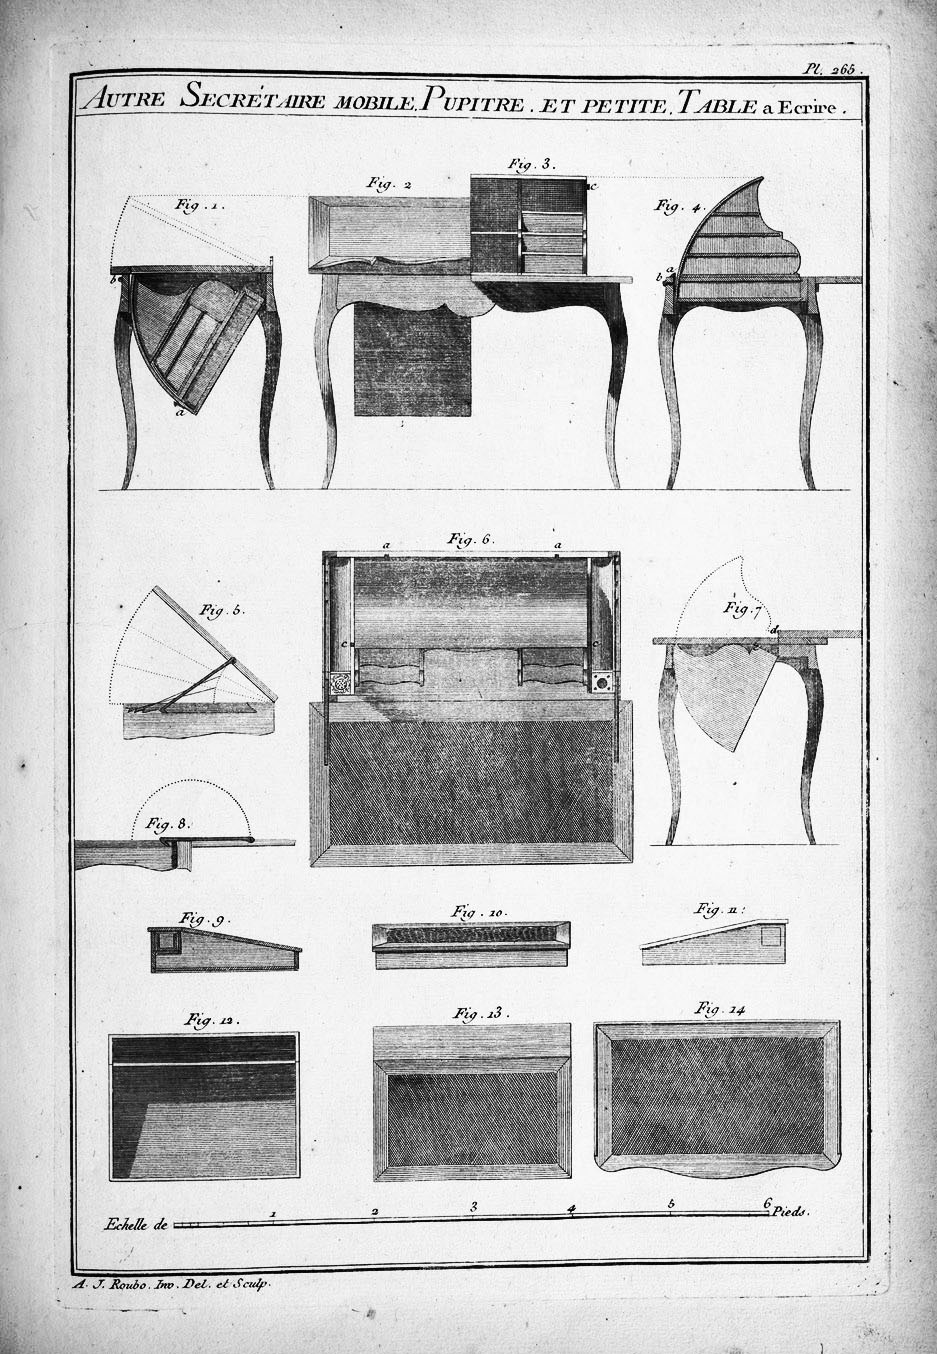 in the secrétaire à culbute, a graduated set of drawers swung a full 180 degrees into position